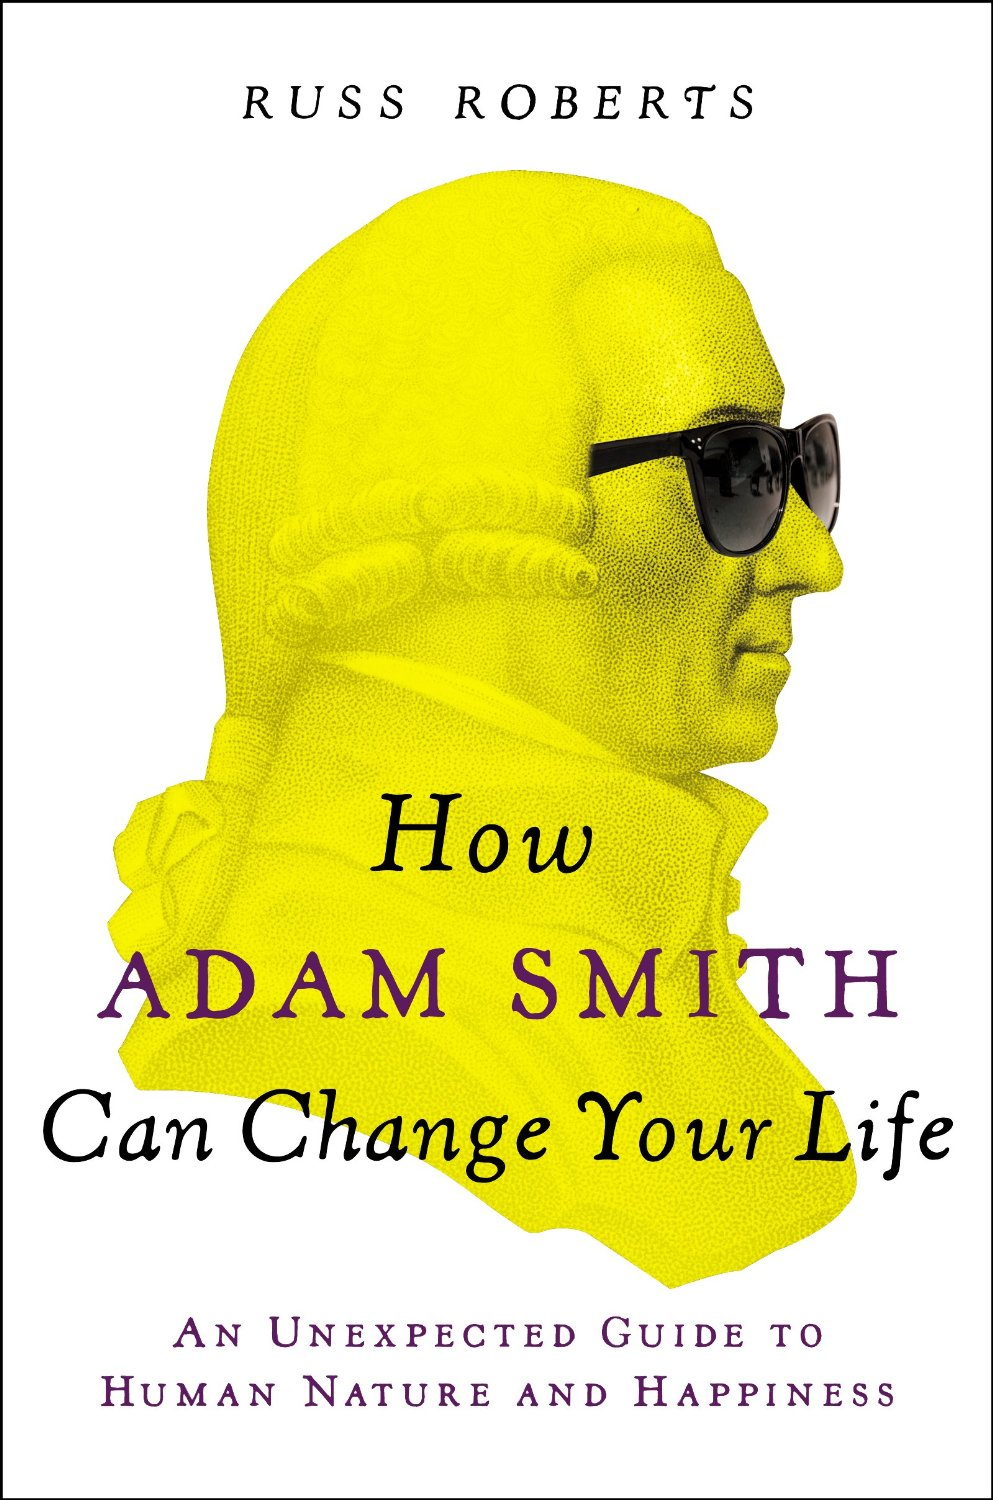 How Adam Smith Can Change Your Life.jpg